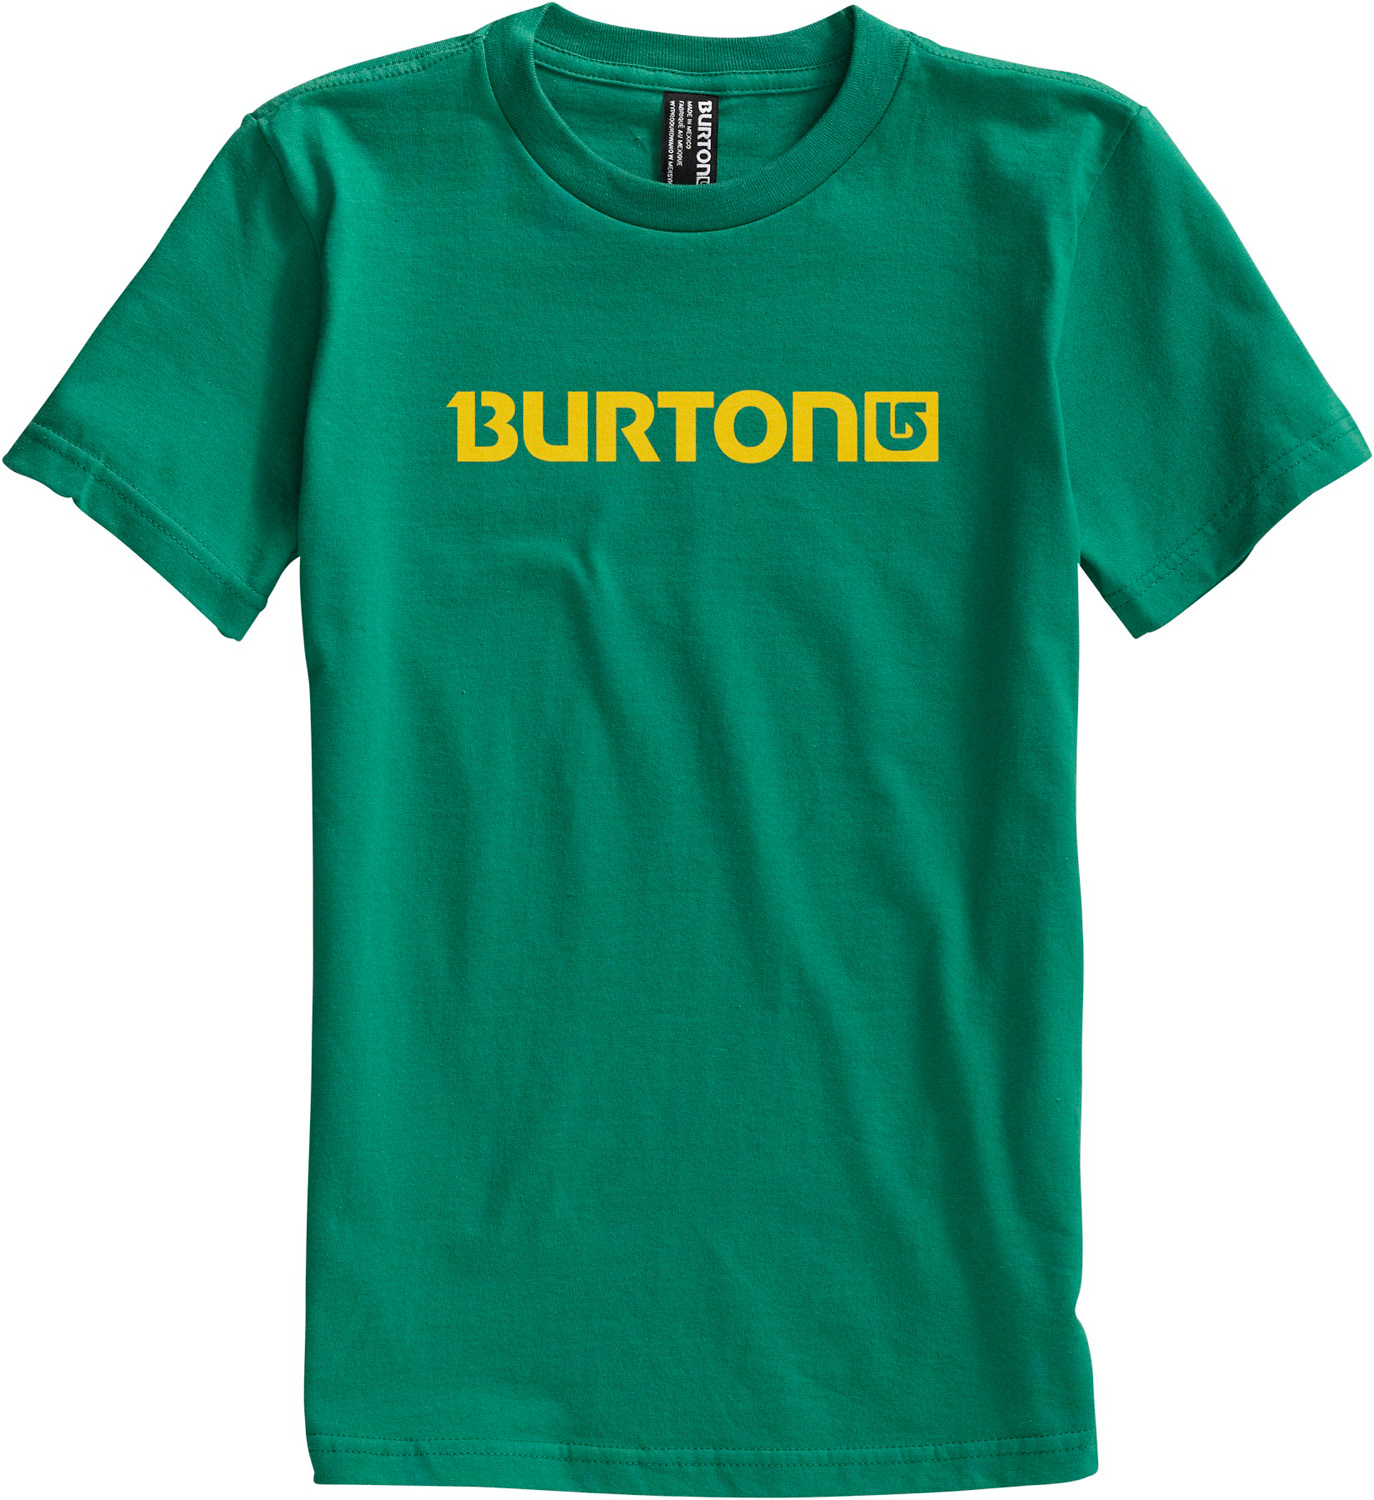 Snowboard Key Features of The Burton Logo Horizontal T-Shirt: Regular Fit Crew Neck Short Sleeve 100% Cotton Screen Print on Front and Back Regular Fit XS-XL - $10.95